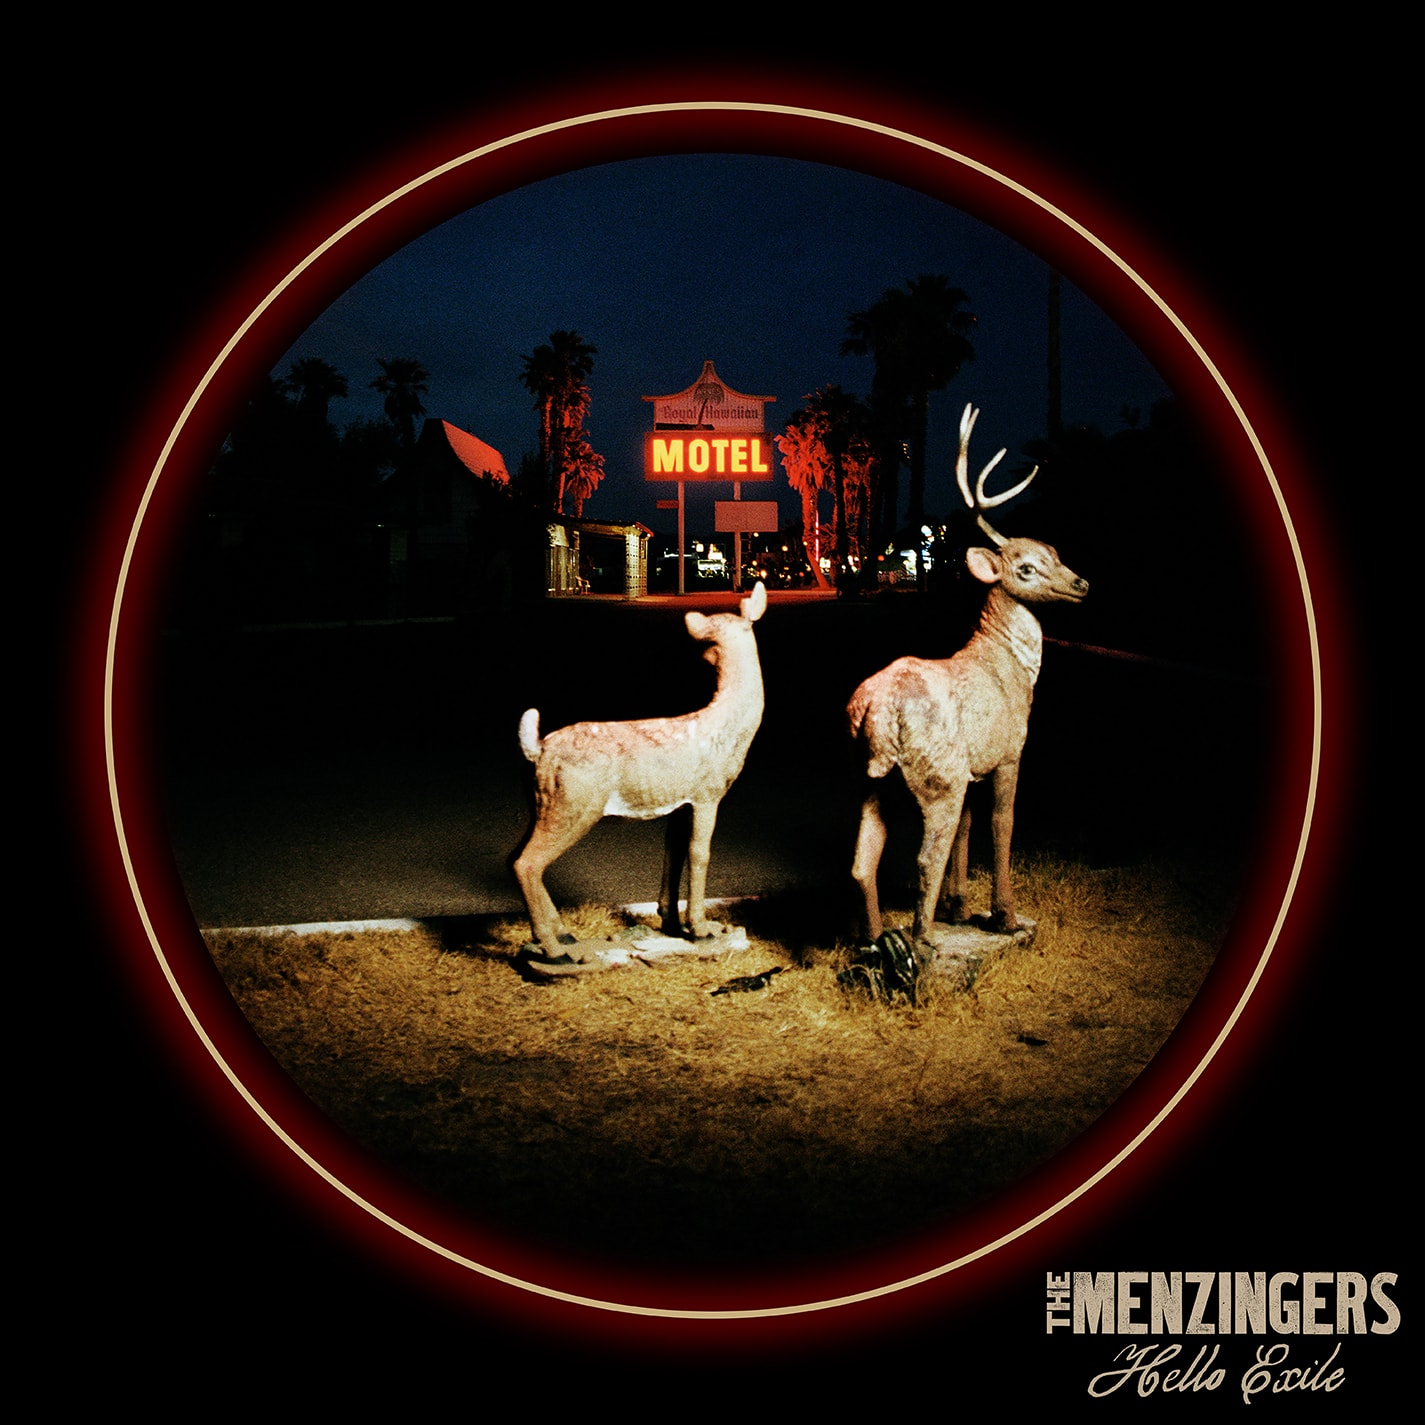 The Menzingers - Hello Exile Album Mini